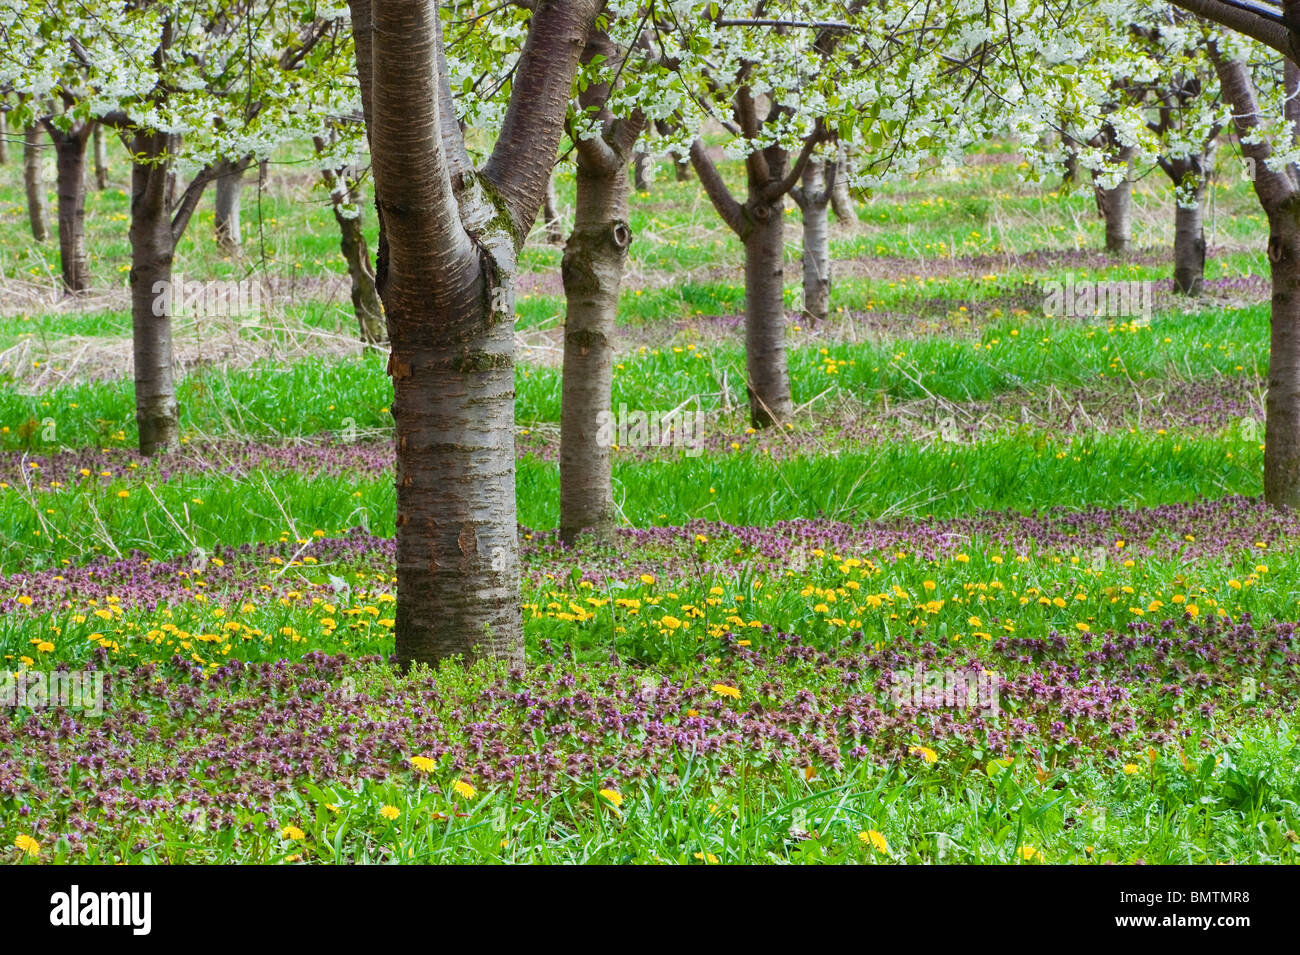 Spring cherry blossoms in Mason county, Michigan orchards.  Photography by Jeffrey Wickett, NorthLight Photography. - Stock Image